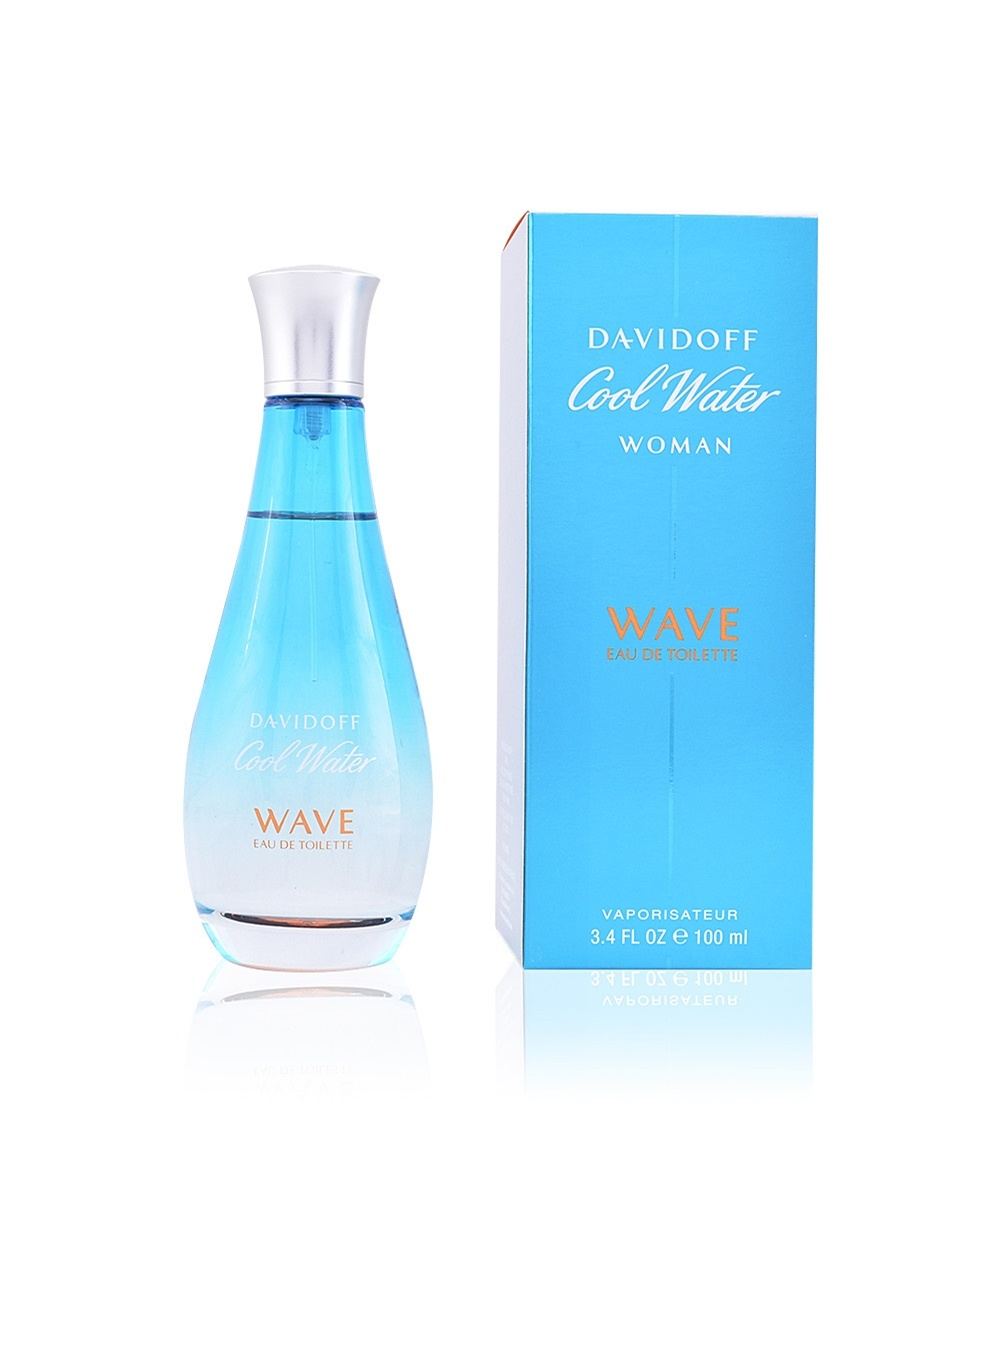 Kadın Davidoff Cool Water Wave Edt 100Ml Parfüm